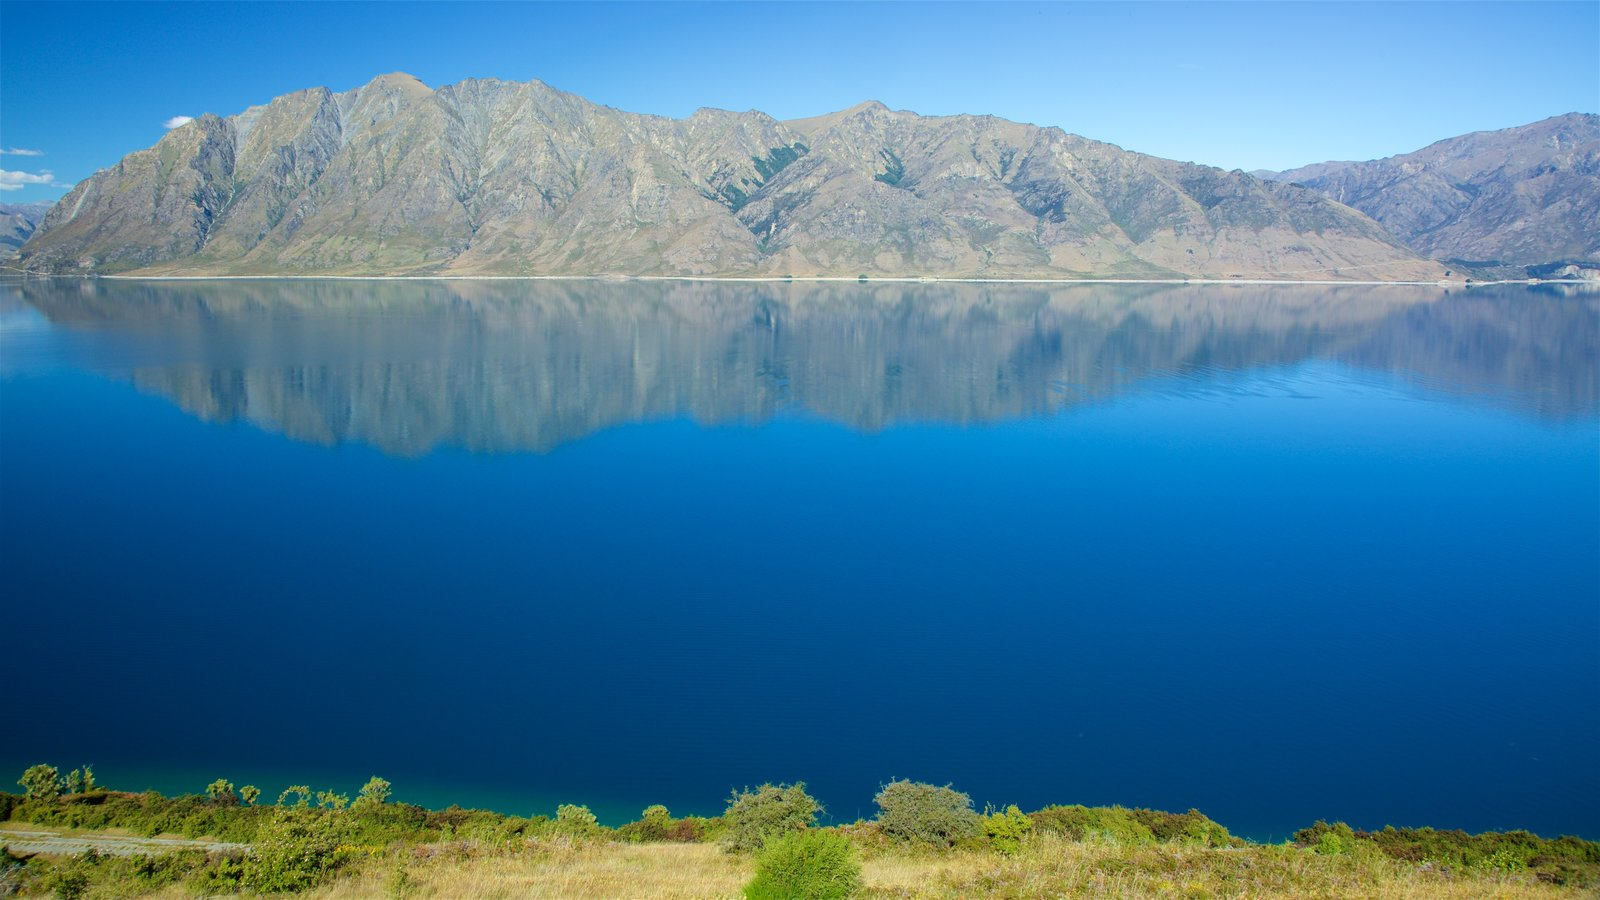 Lake Hawea showing mountains and a lake or waterhole